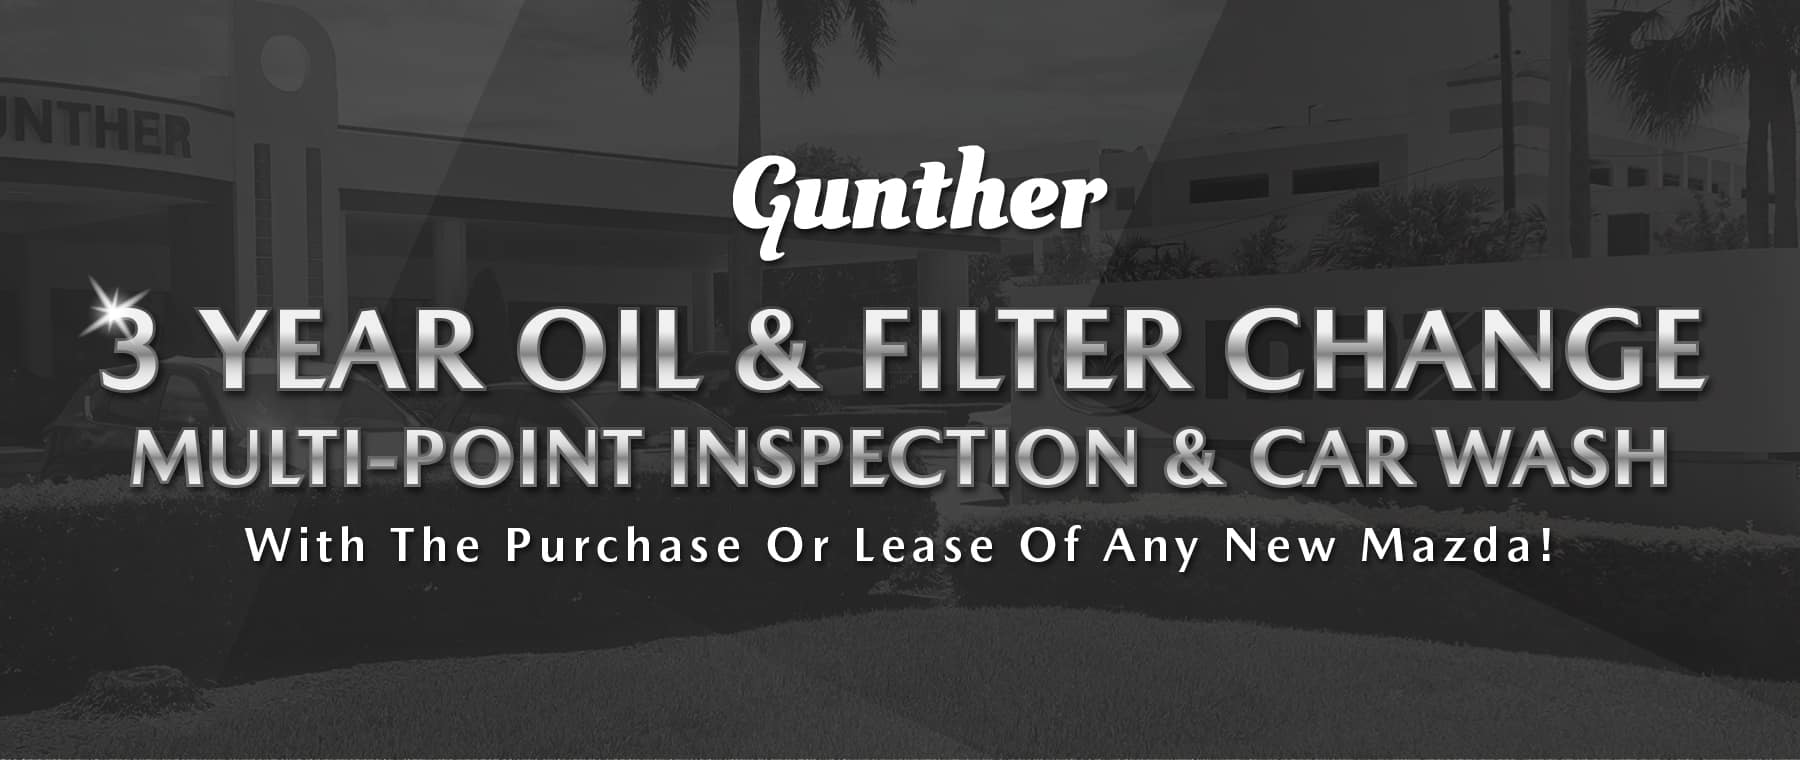 Gunther 3 year oil & filter change multi-point inspection & car wash with the purchase or lease of any new mazda!